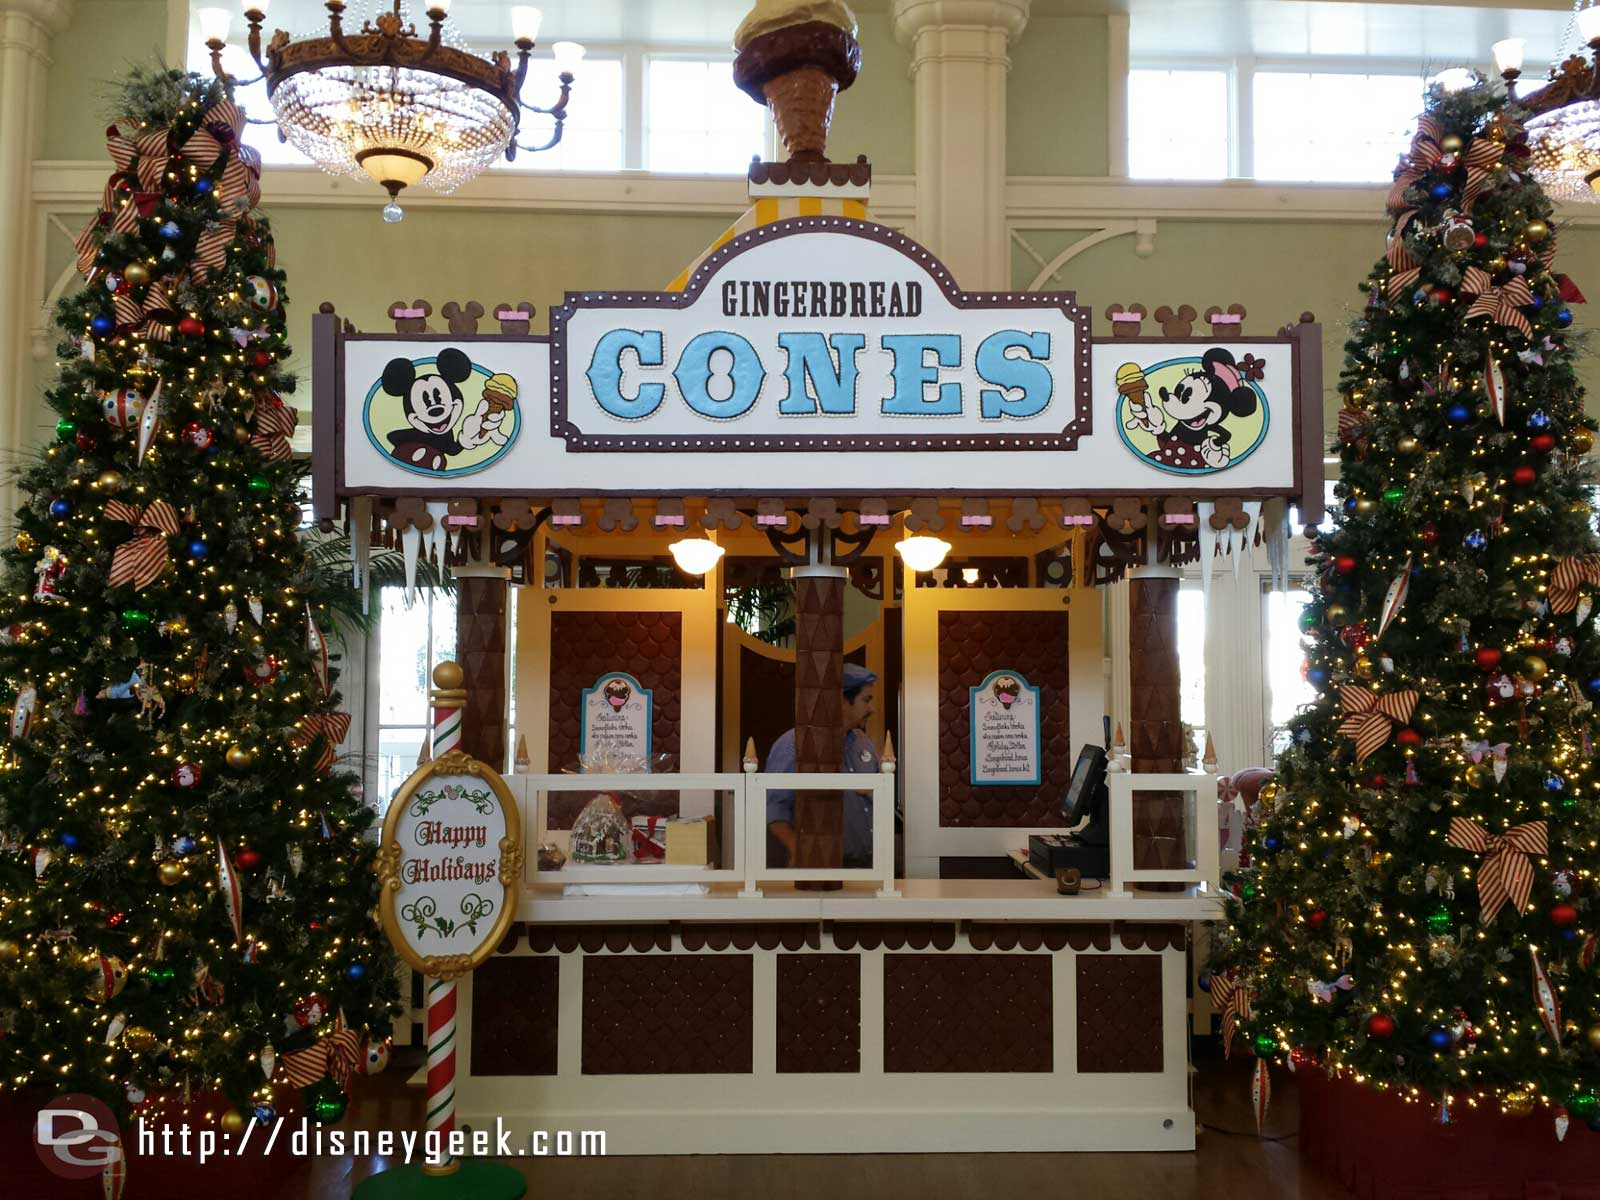 Disney's Boardwalk Resort lobby Gingerbread Cones stand